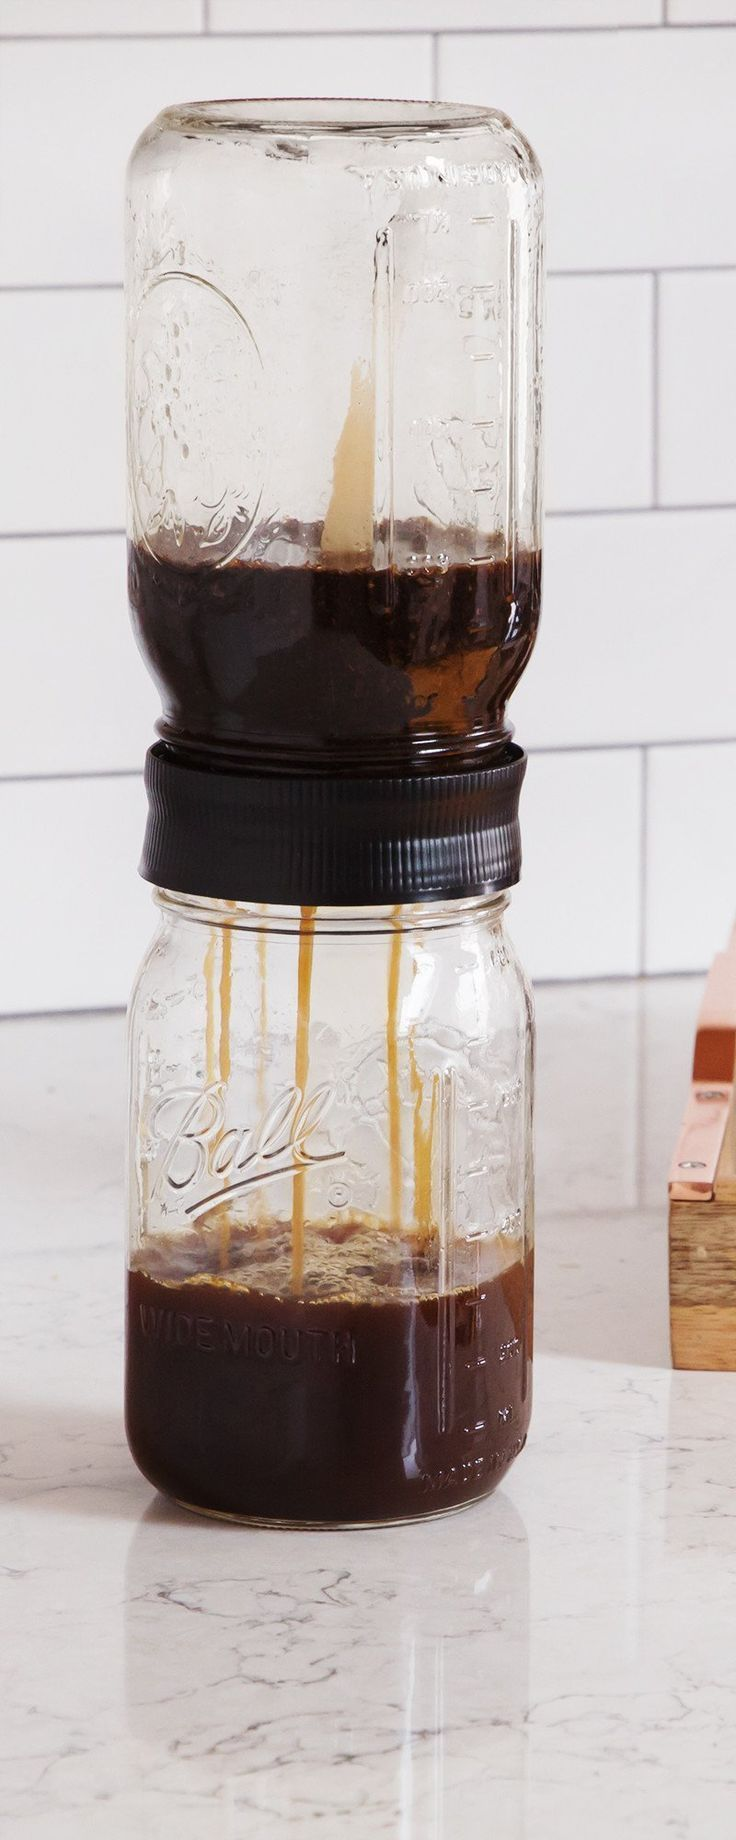 Cold Brew Mason Jar Filter is part of Cold Brew Mason Jar Filter By Bruw The Grommet -  Made in the USA West Bloomfield, MI Materials High Density Polyethylene (HDPE), stainless steel, vinyl  Care Hand wash with soap and warm water  Filters coffee grounds  Unique filtration system  Filter fits any standard widemouth mason jar  For use with mason jars only  Please note Mason jars not included  Dimensions 3 5  diameter x 1 25  Weight 0 5 lb